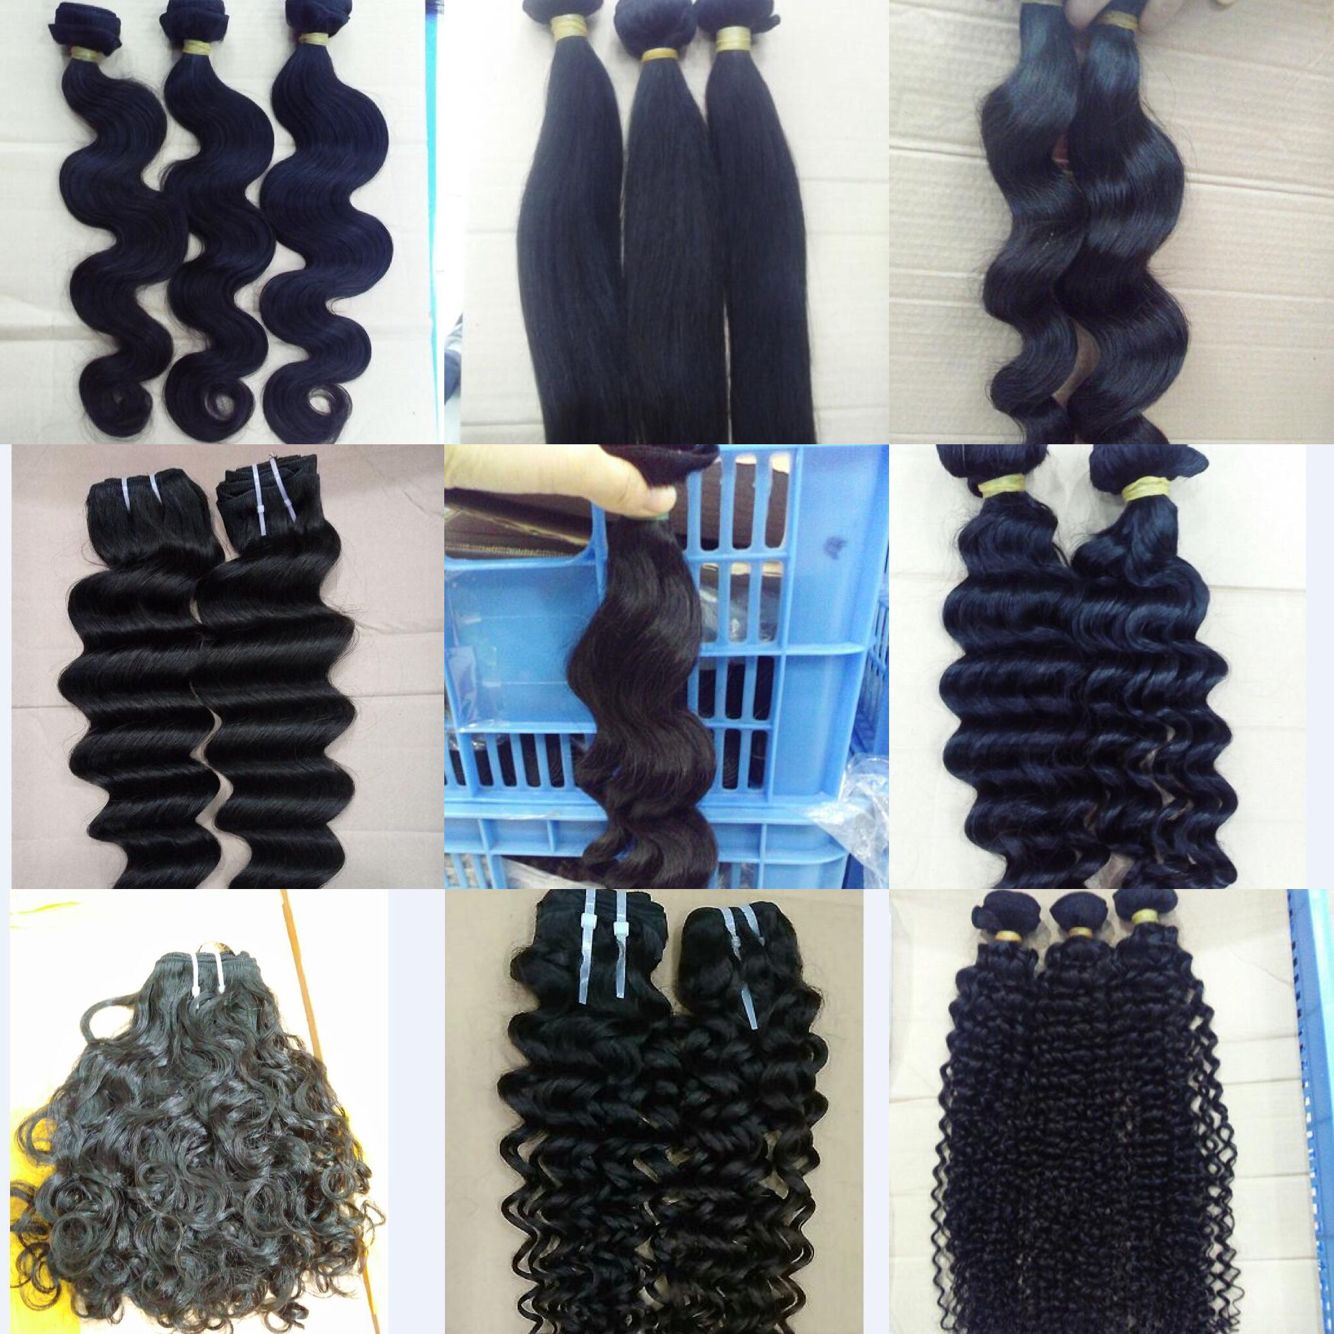 10A Single Bundle Collection Raw Hair Unprocessed Hair Virgin Hair 1 Bundle in Wholesale Price